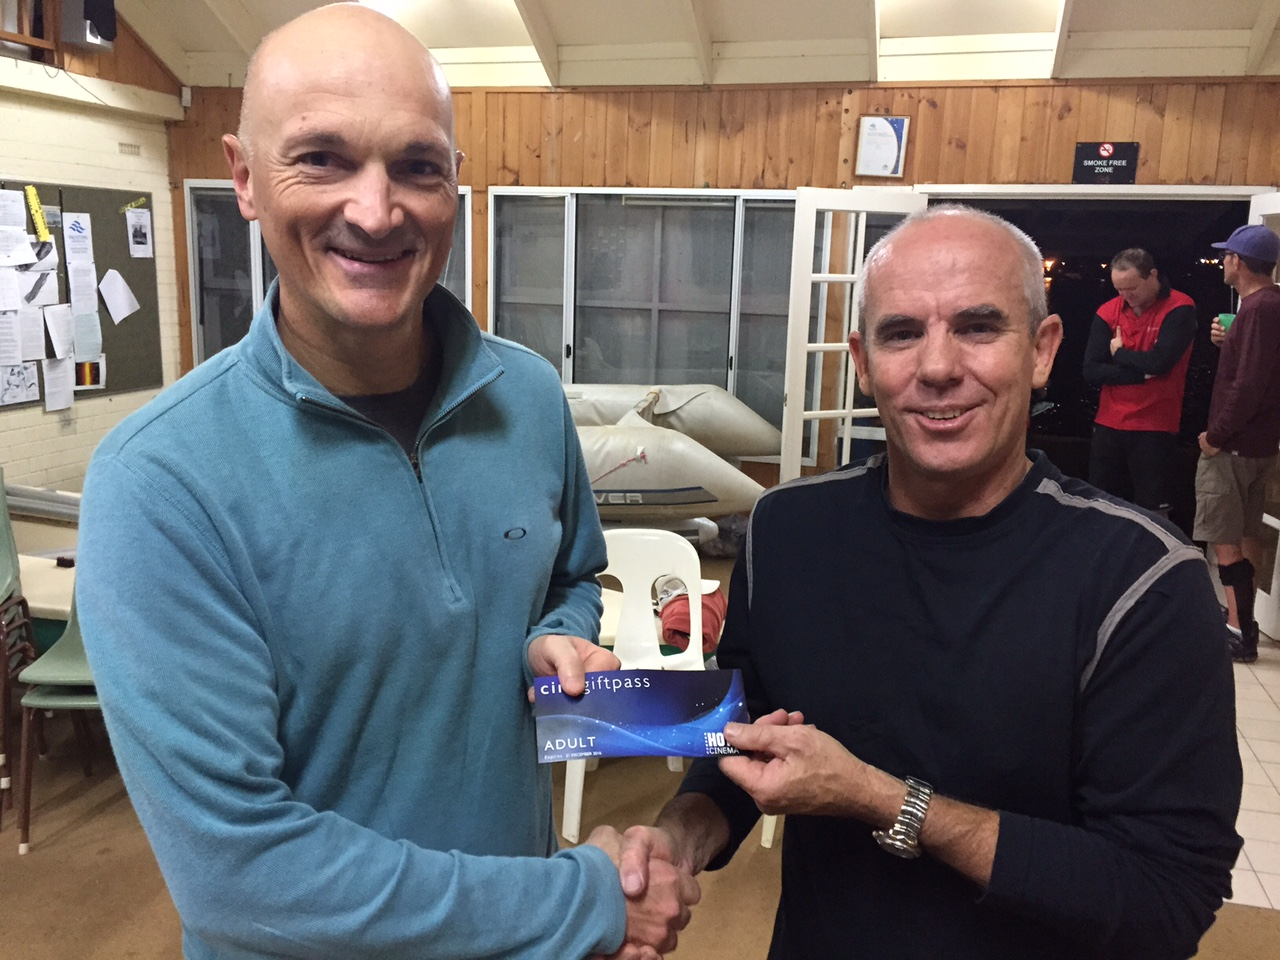 Tues 3rd May 2016 : Tonight's photo shows club member Peter Fergusson presenting tonight's winner Carlo Cottino with a movie voucher